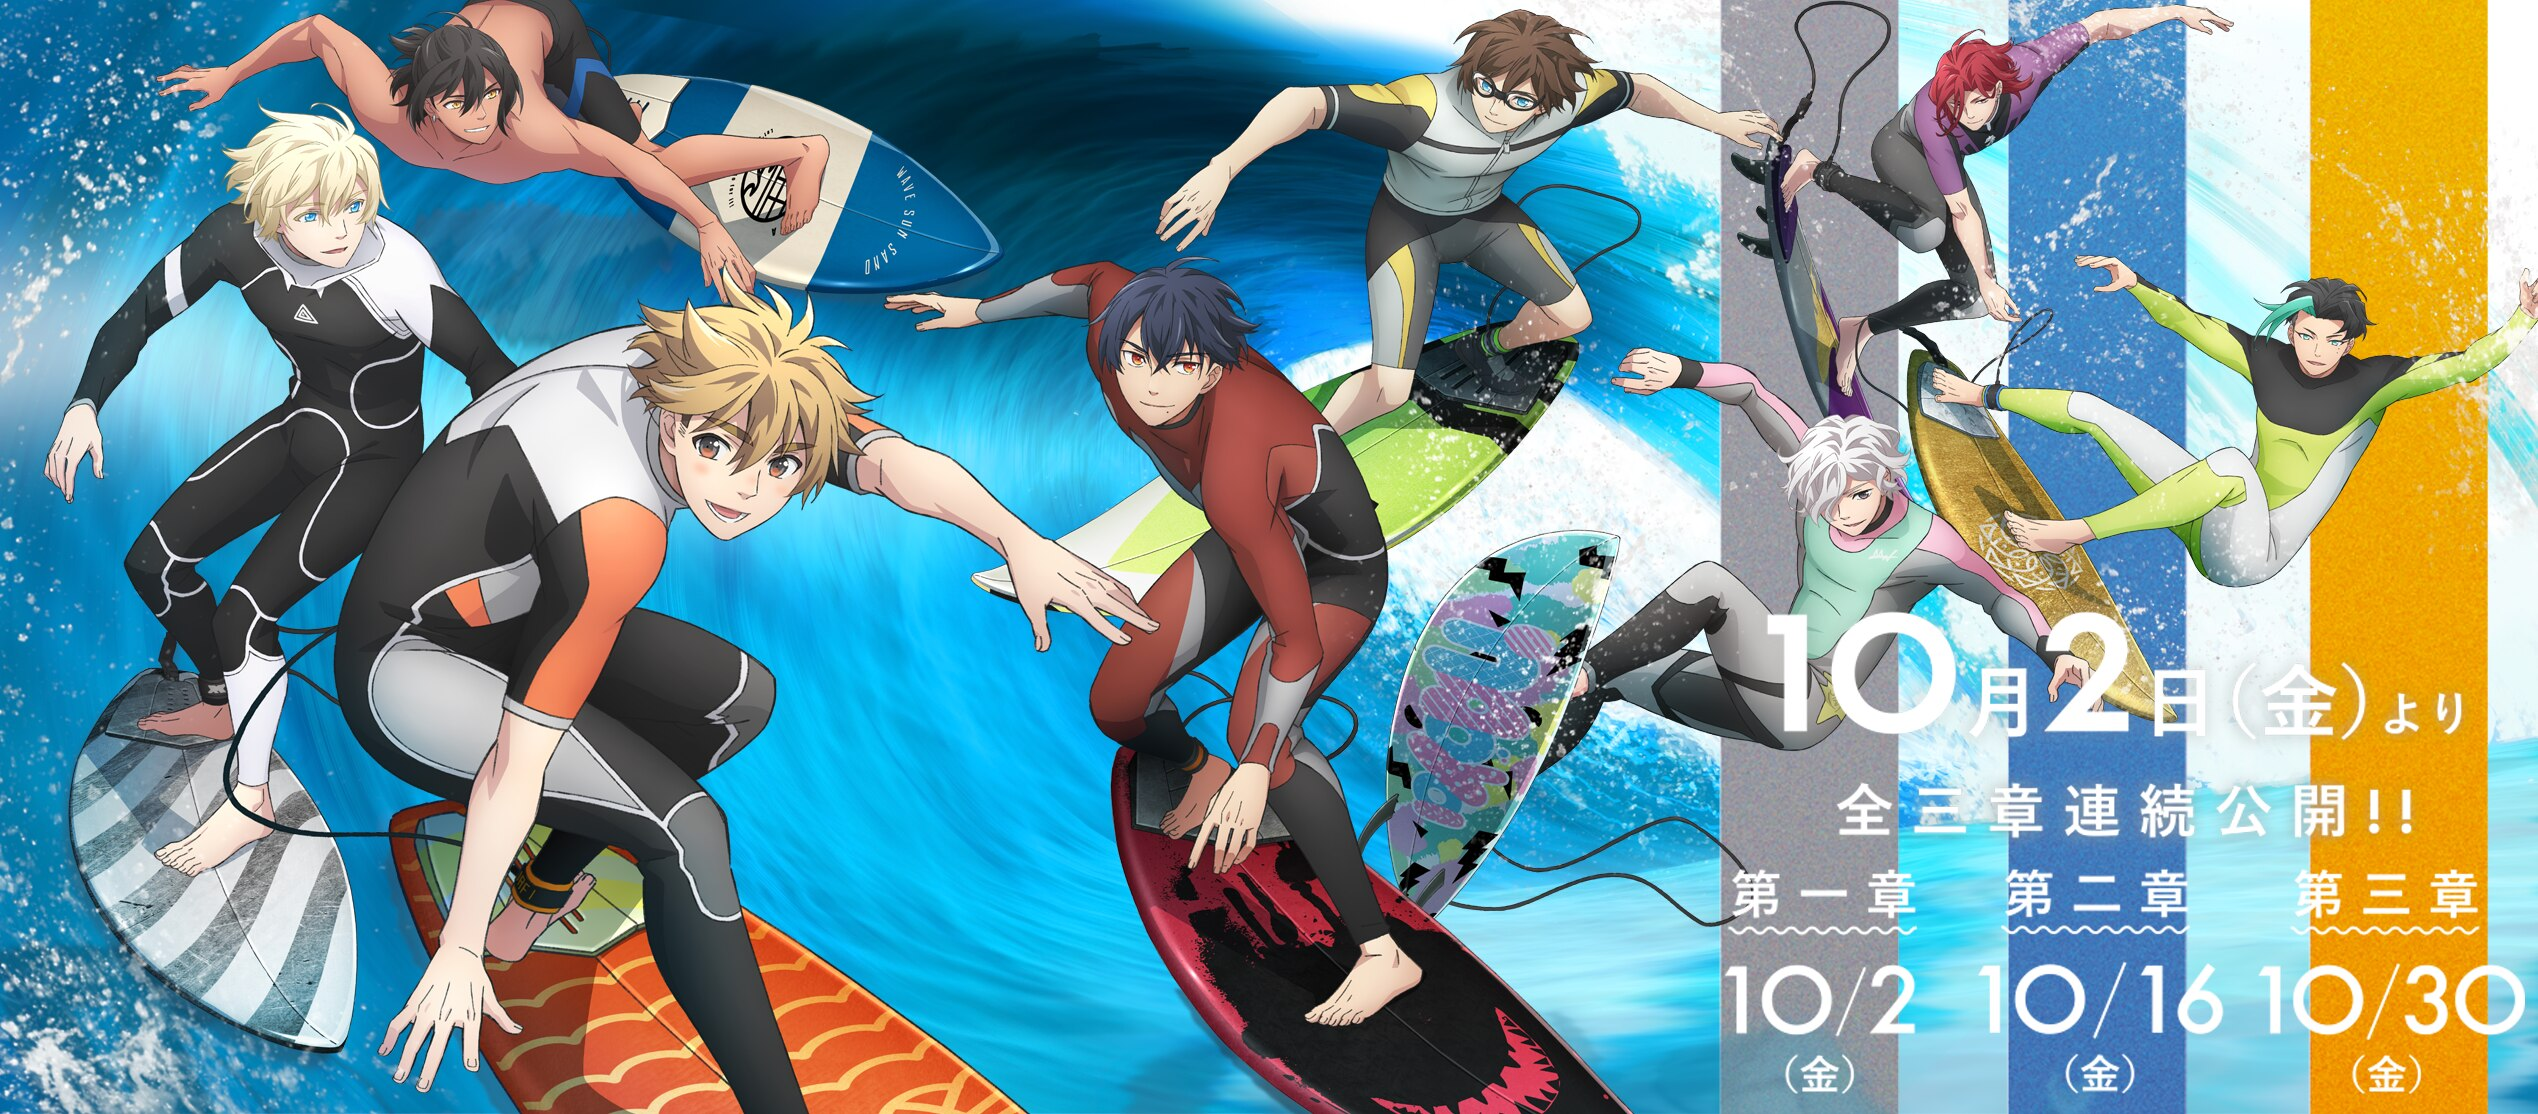 A banner image promoting the upcoming WAVE!! Surfing Yappe!! anime theatrical film, featuring a panoramic view of all of the main characters surfing on the same breaking wave.